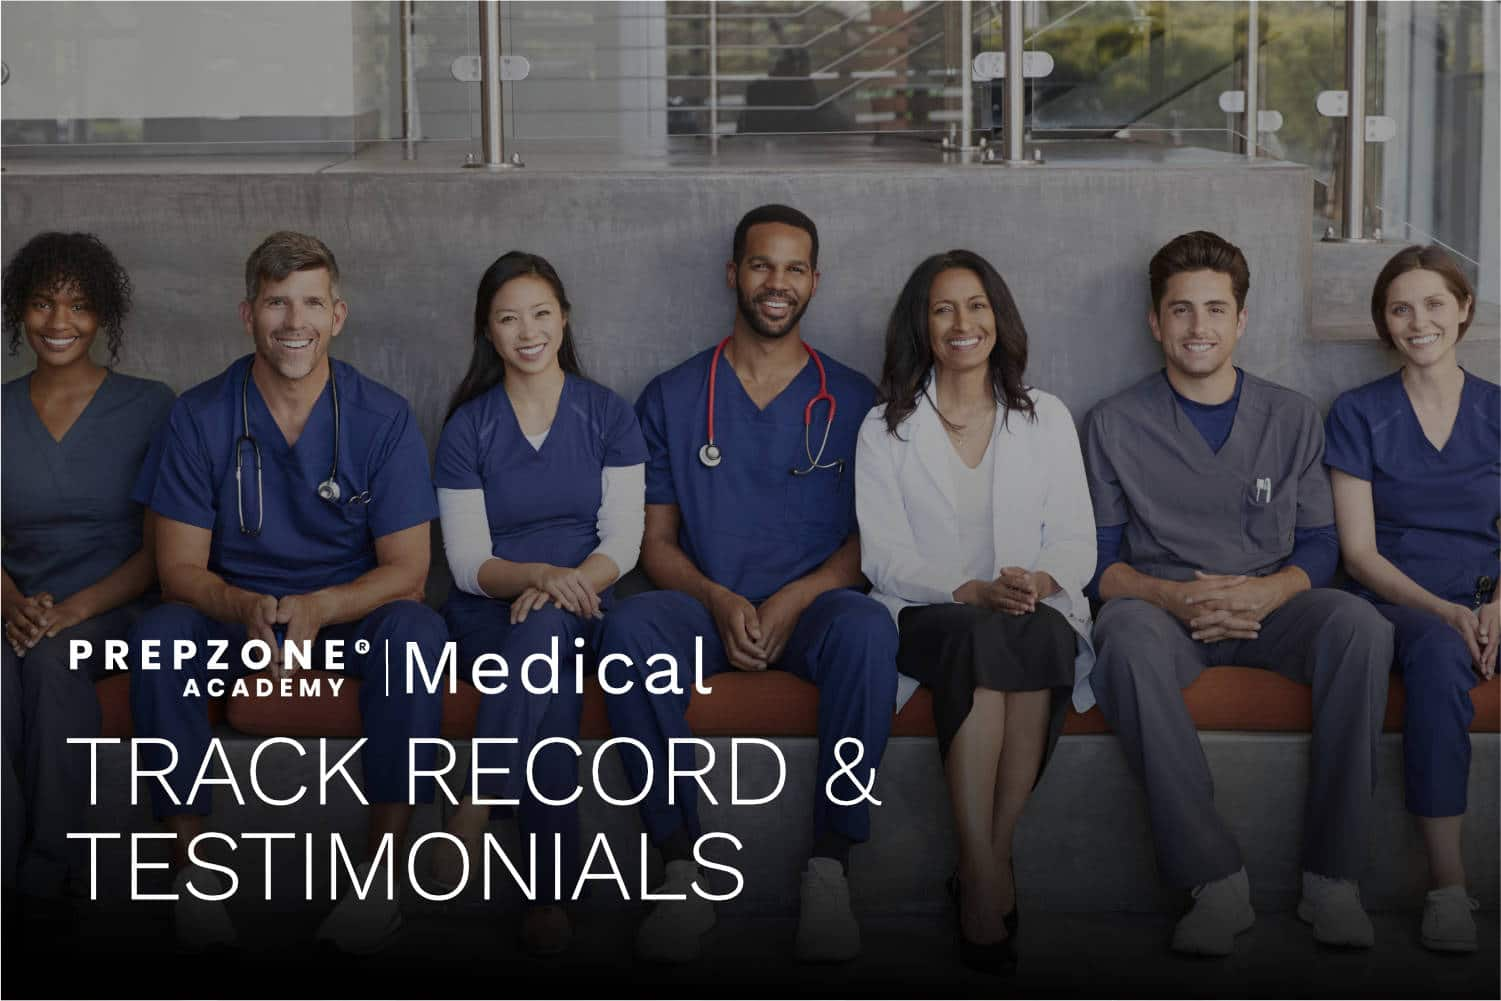 Track Record & Testimonials: Admissions Year 2019-2020